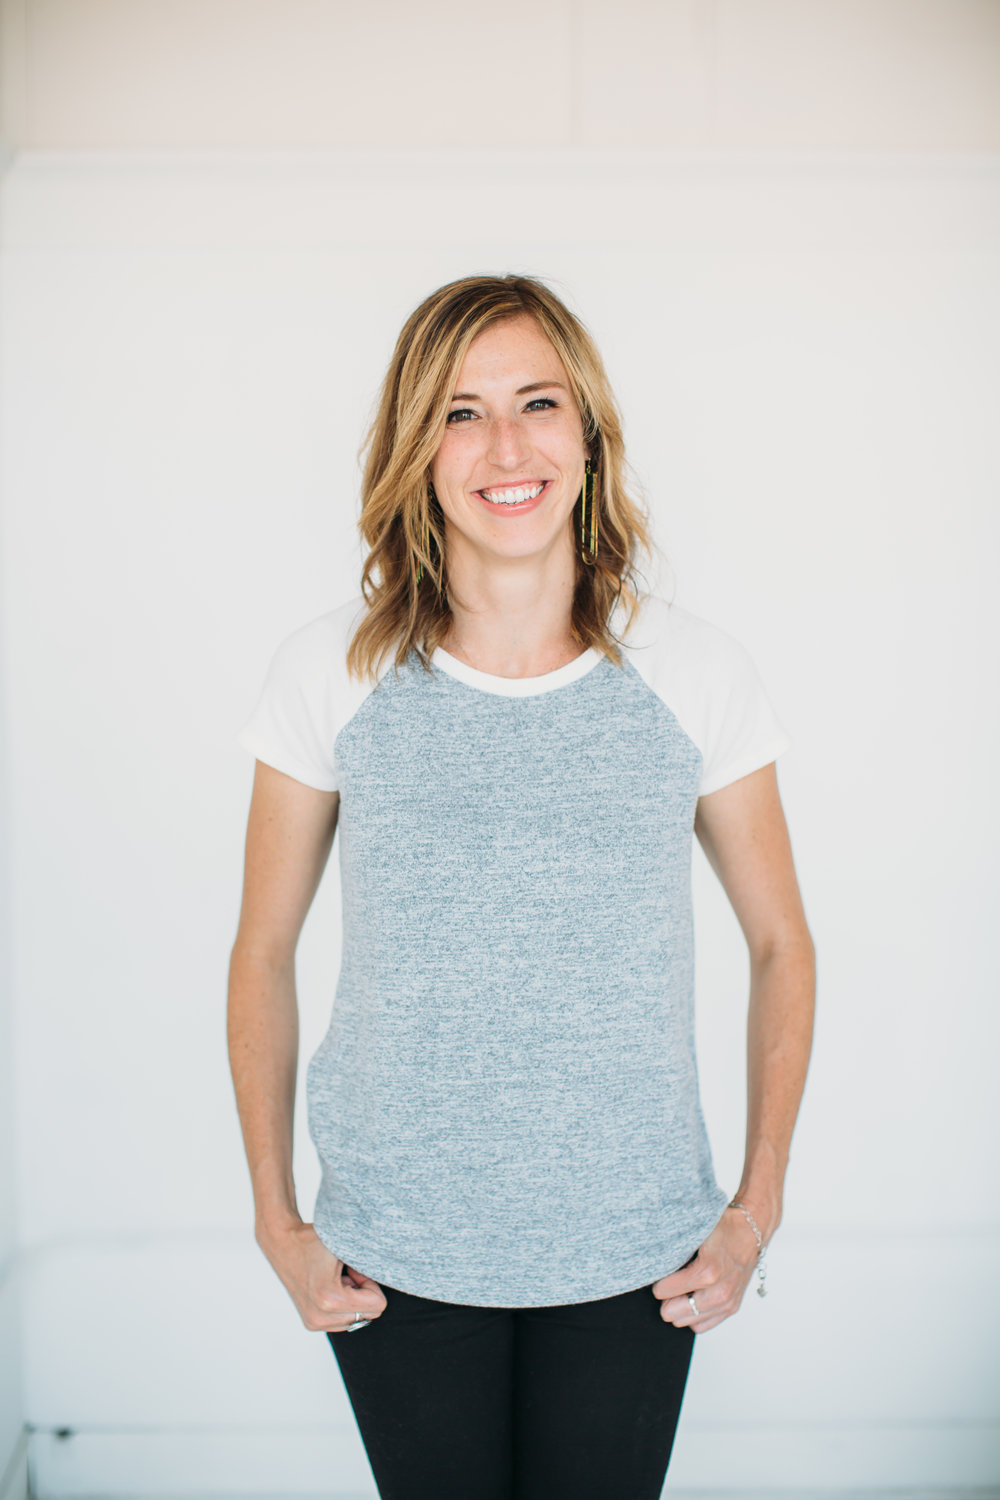 sam_headshots_9117-45.jpg